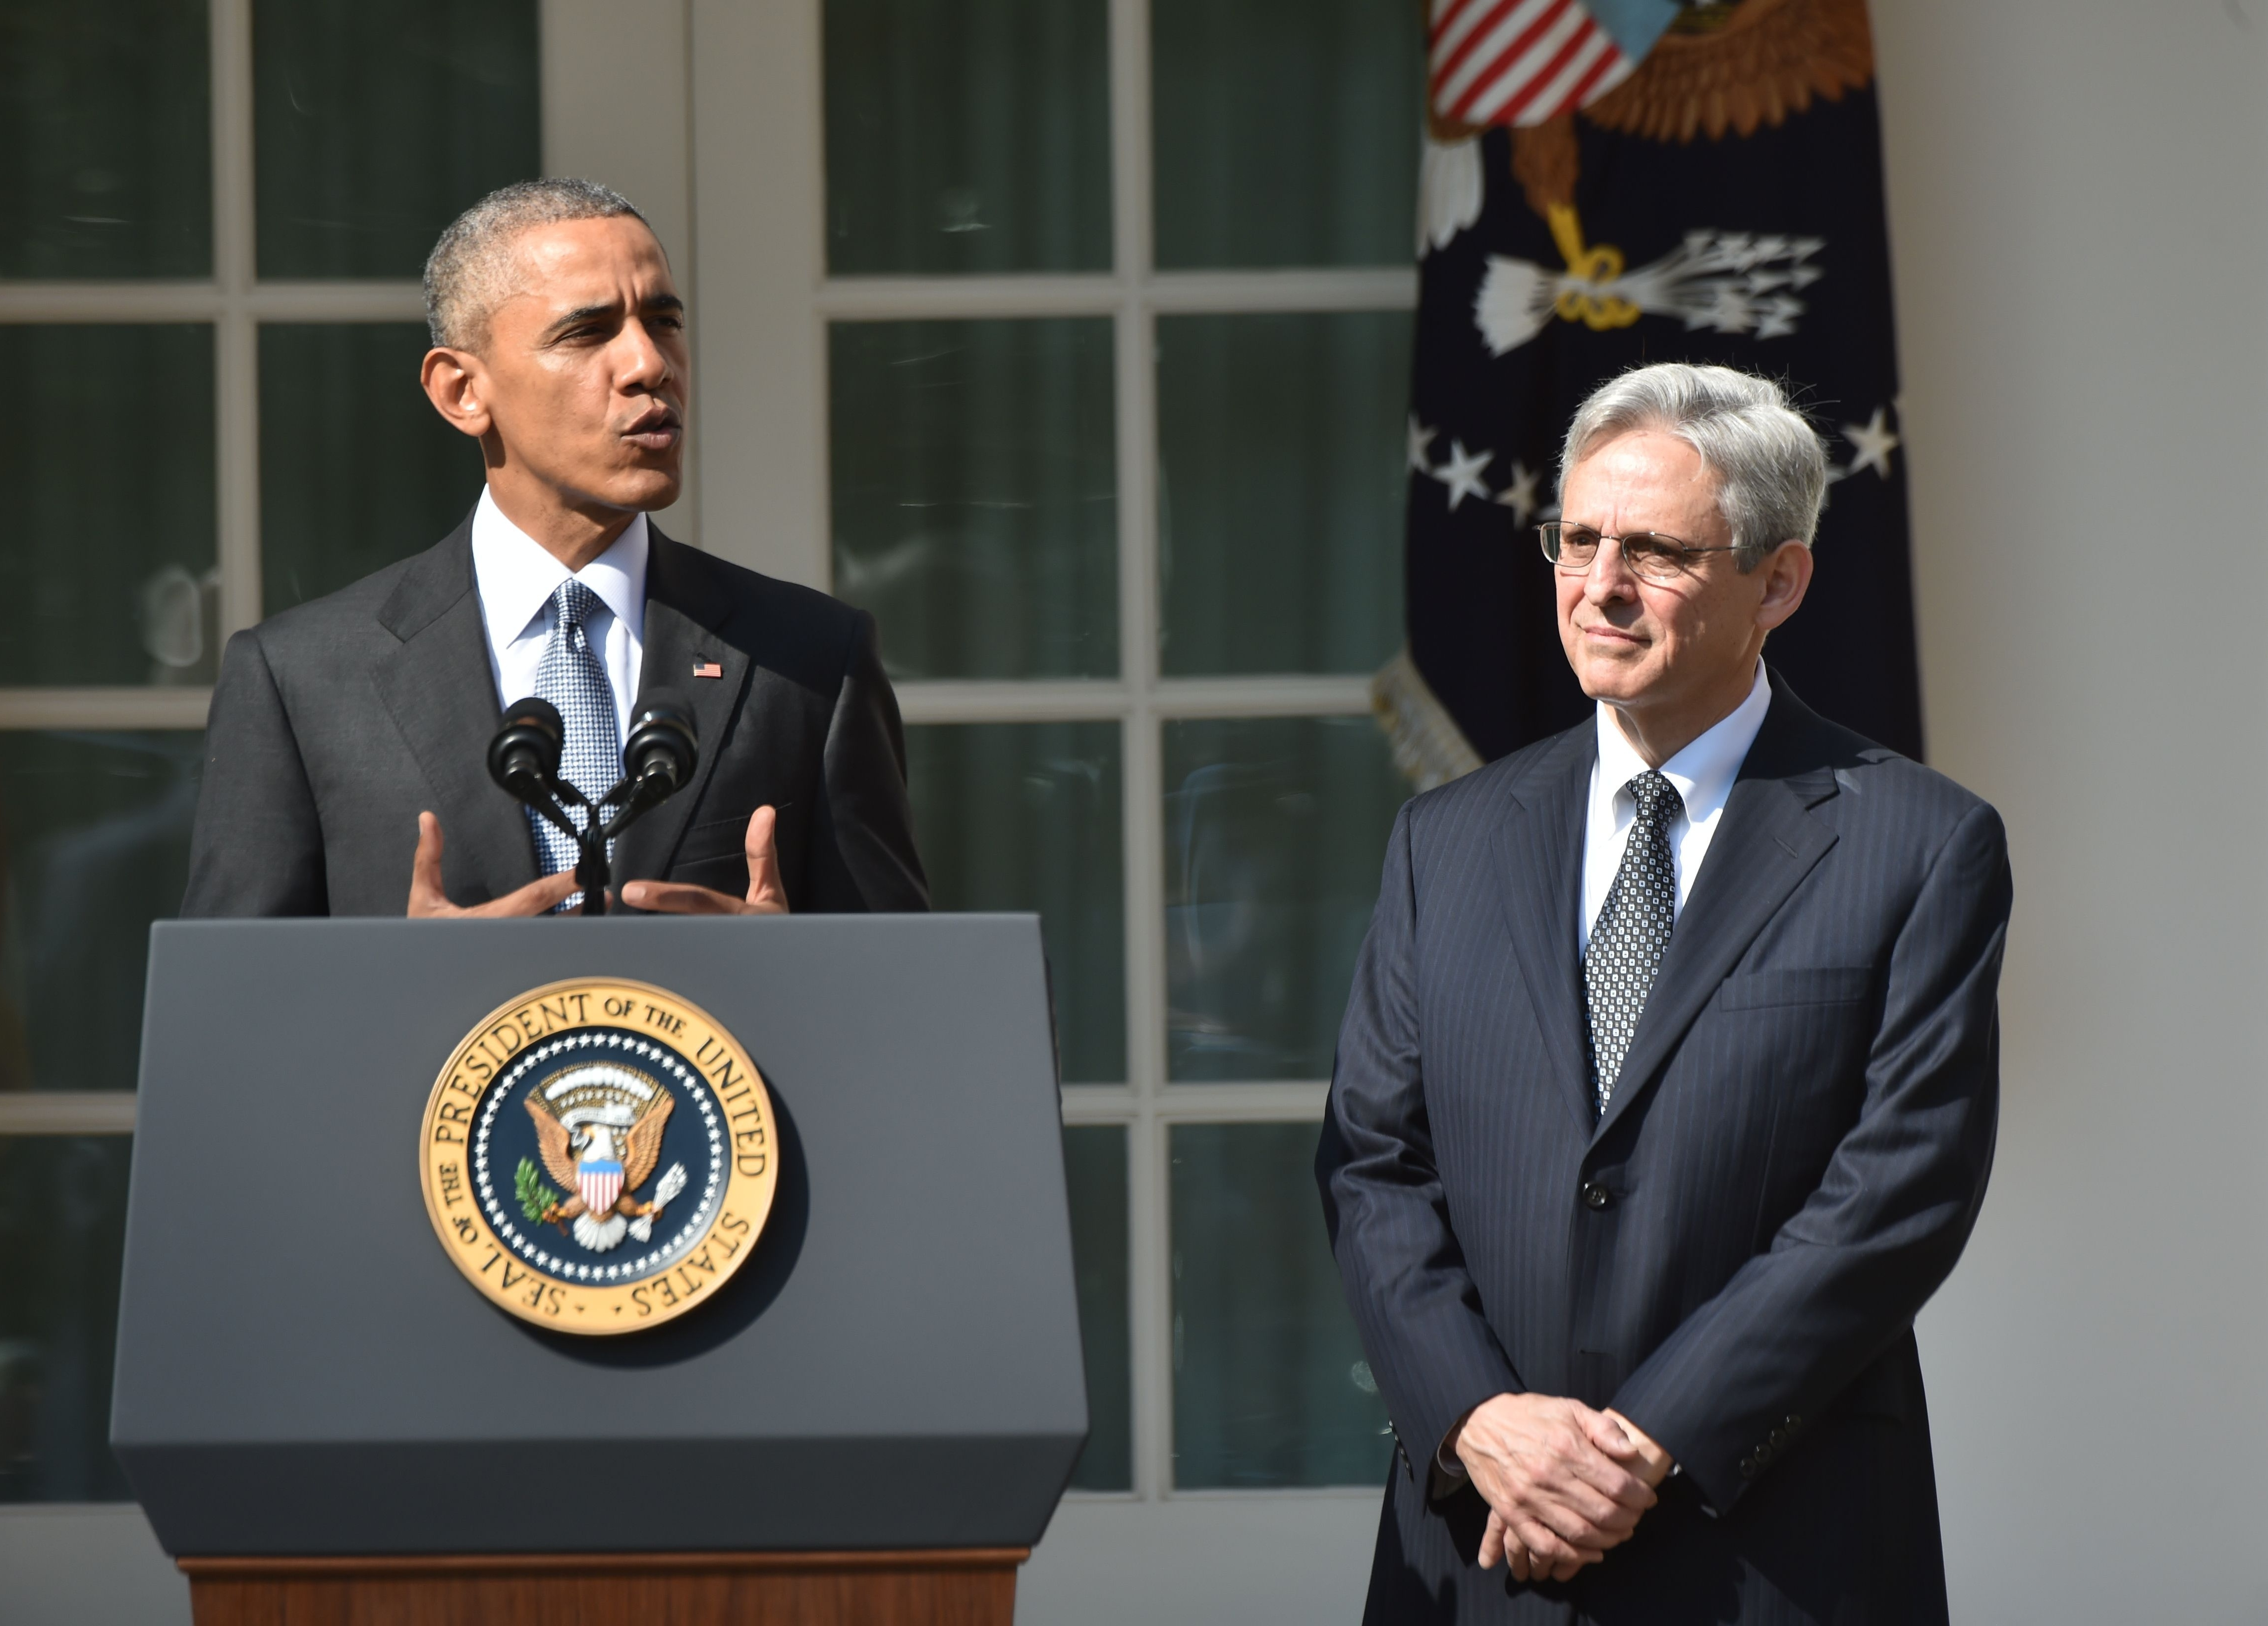 Merrick Garland Is Named As President Obama's Supreme Court ...